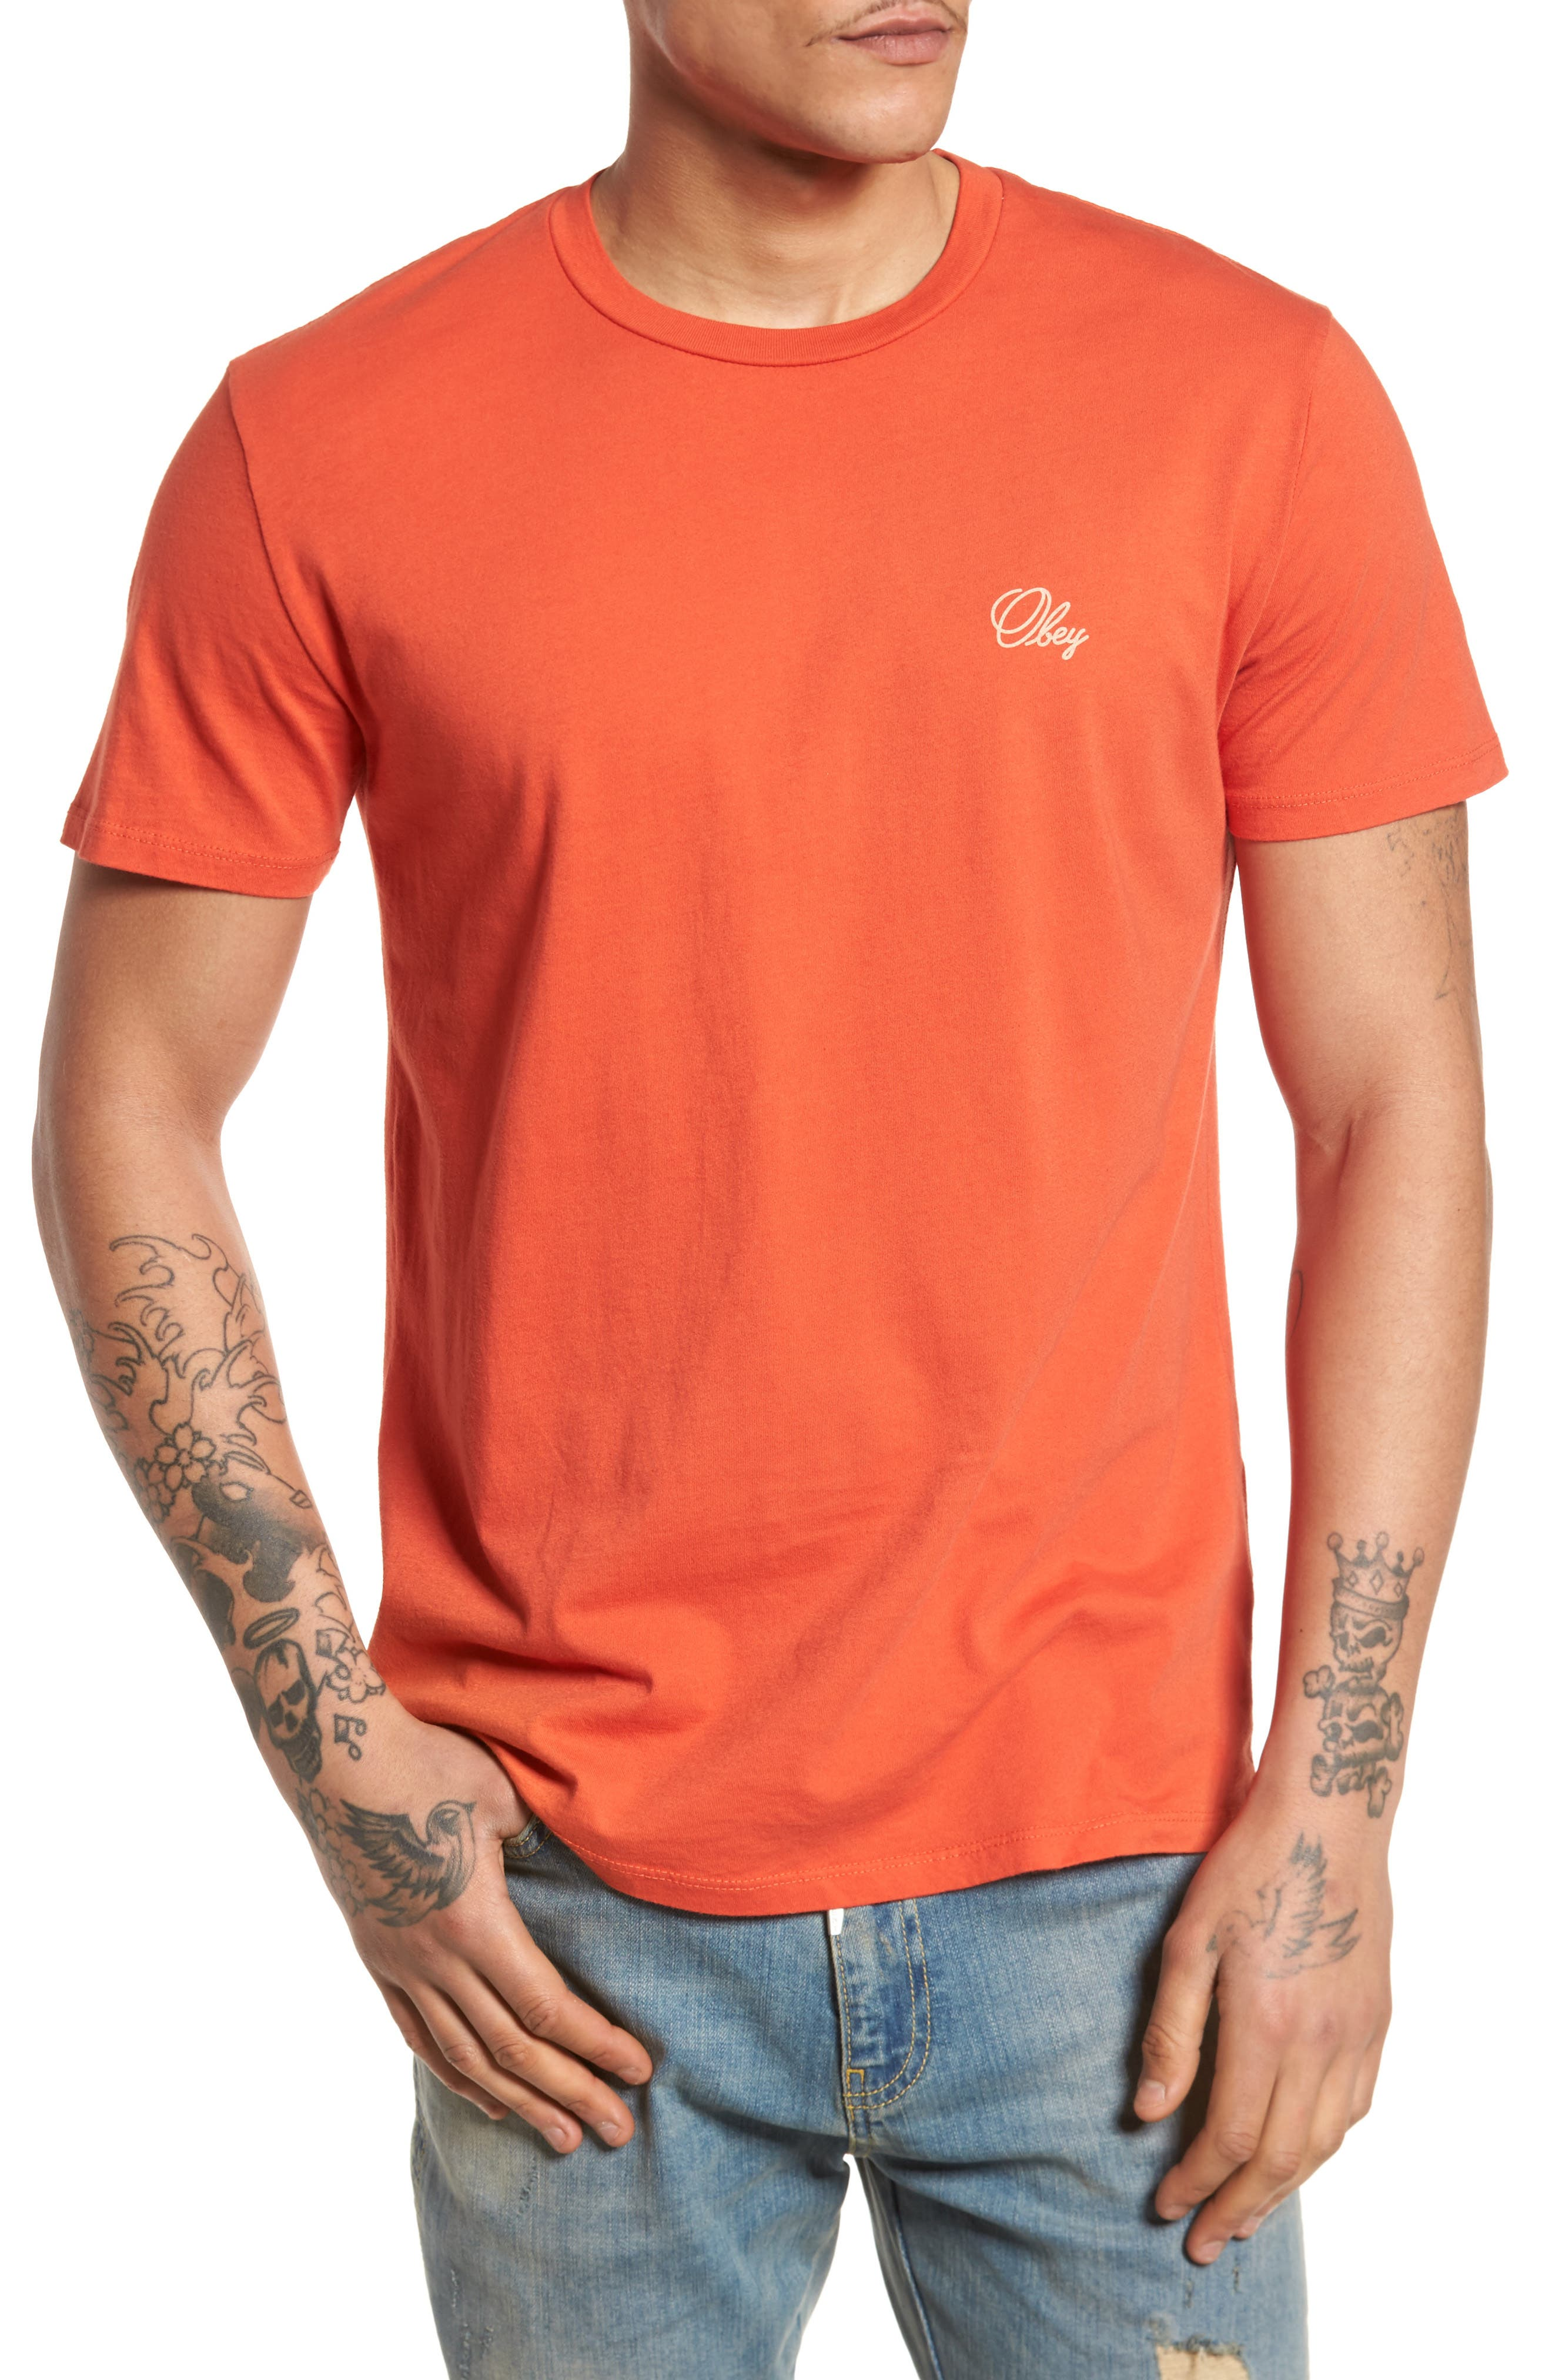 Main Image - Obey Old Script Superior T-Shirt